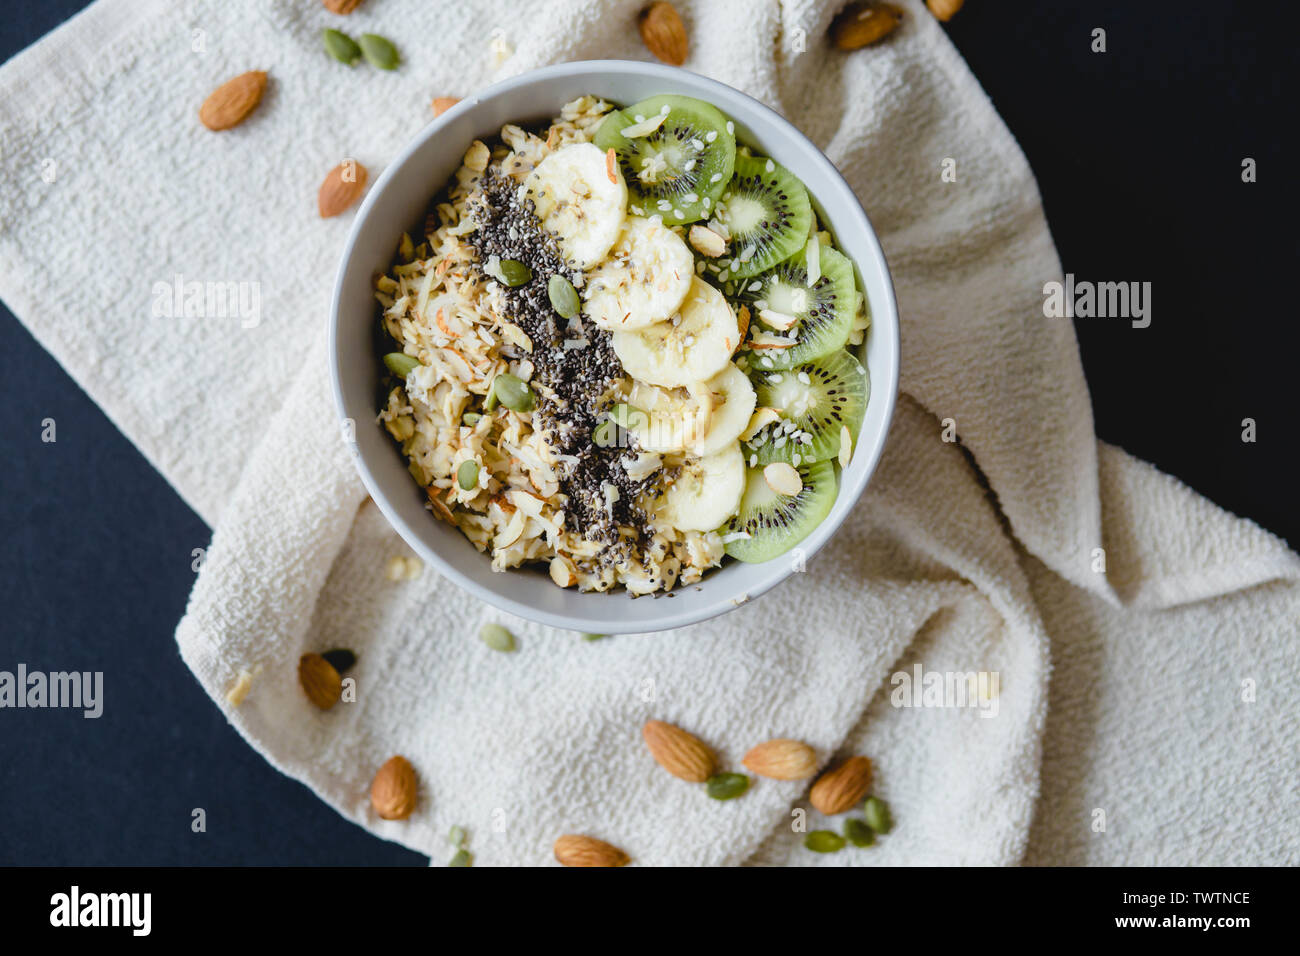 healthy Breakfast of oatmeal with kiwi, banana and chia seed on a white napkin, on black background - Stock Image